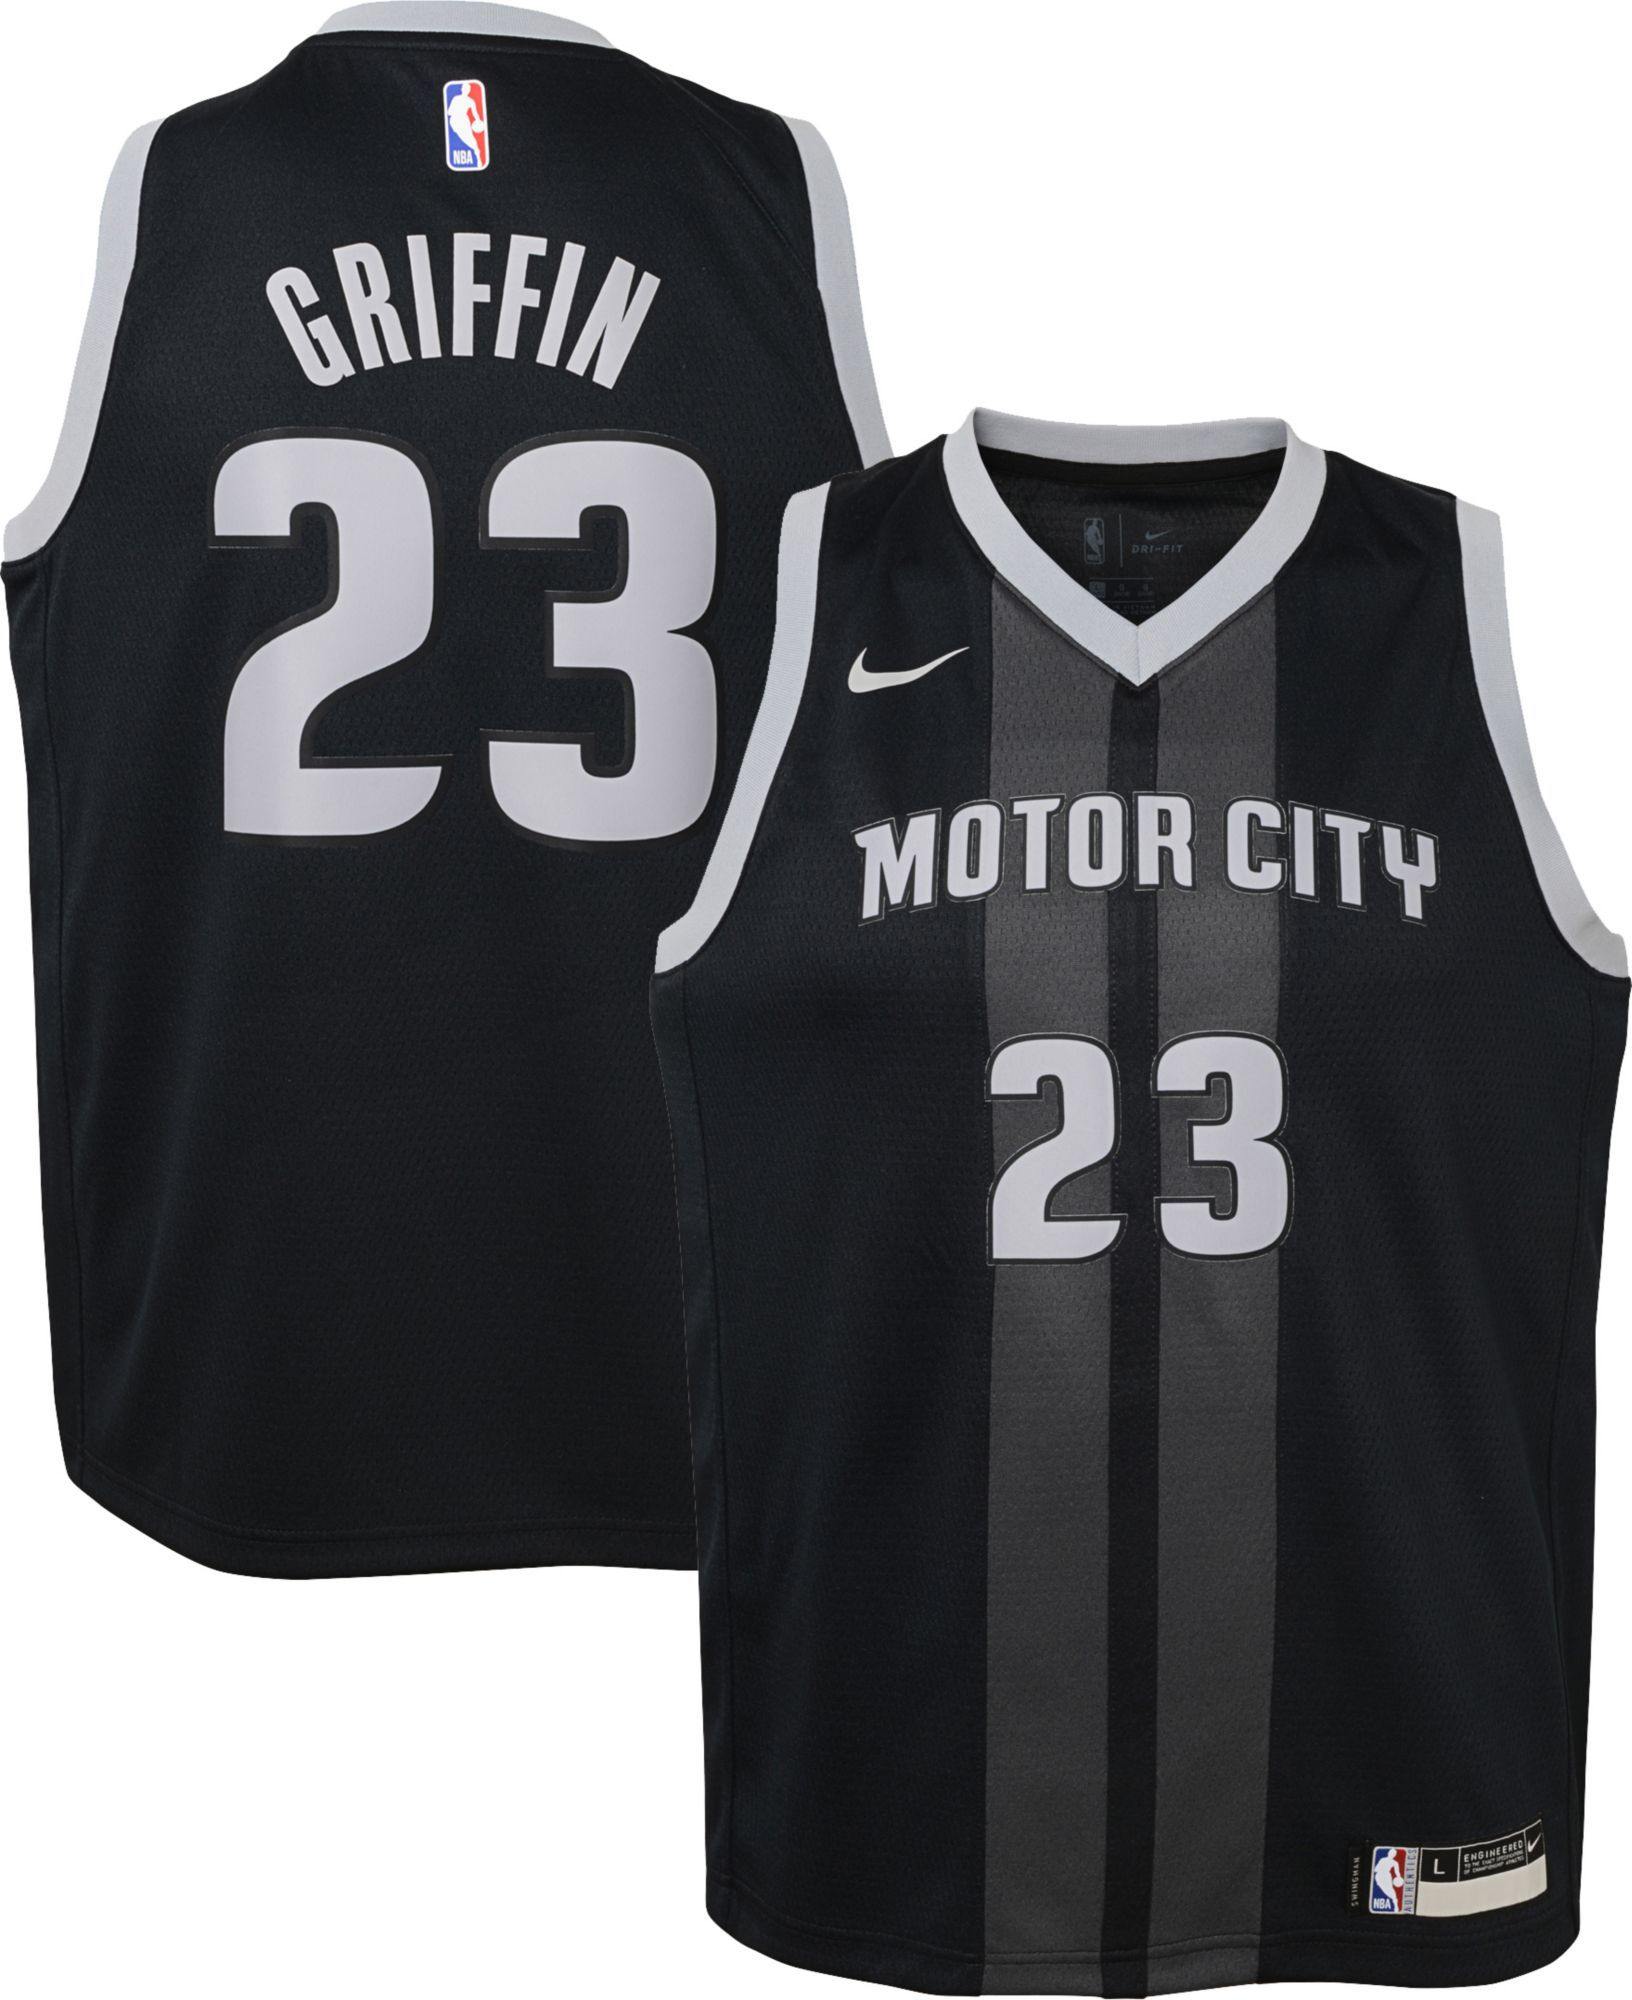 35a6f8192 Nike Youth Detroit Pistons Blake Griffin Dri-FIT City Edition Swingman  Jersey